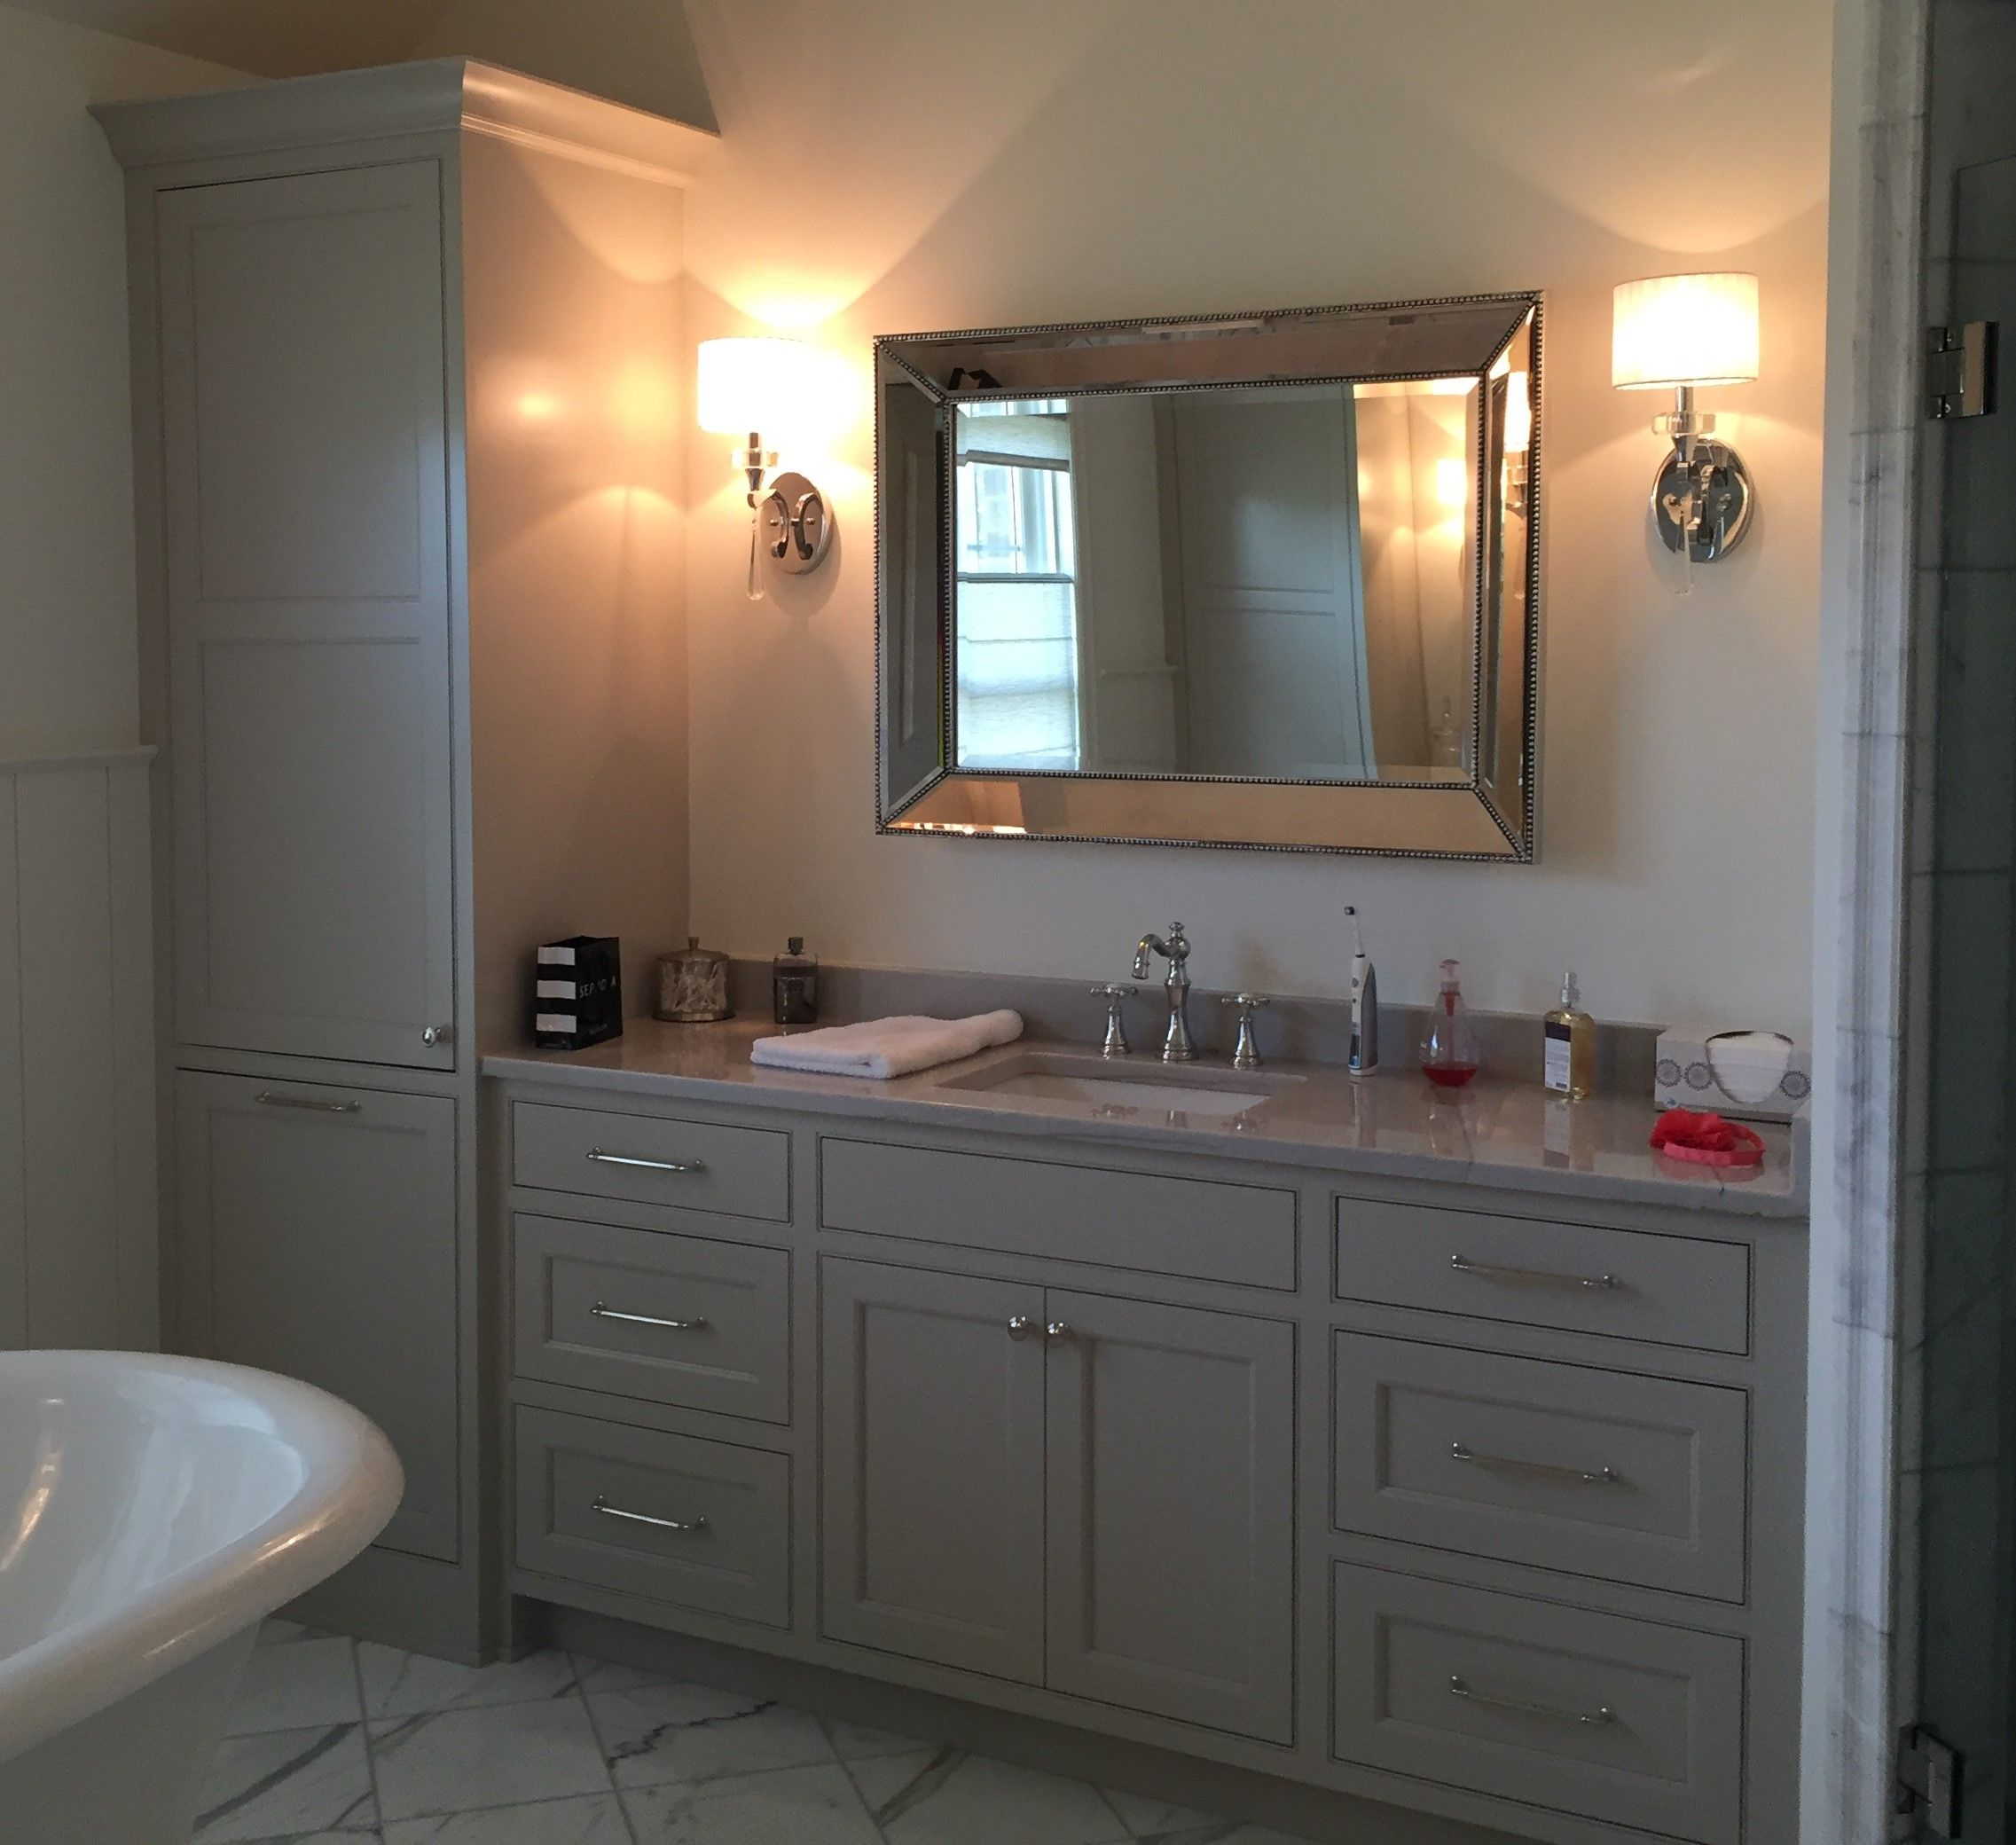 painted inset vanity with linen closet and laundry basket pull out rh pinterest com Linen Closet and Vanity Sets Bathroom Linen Closet with Vanity Combo